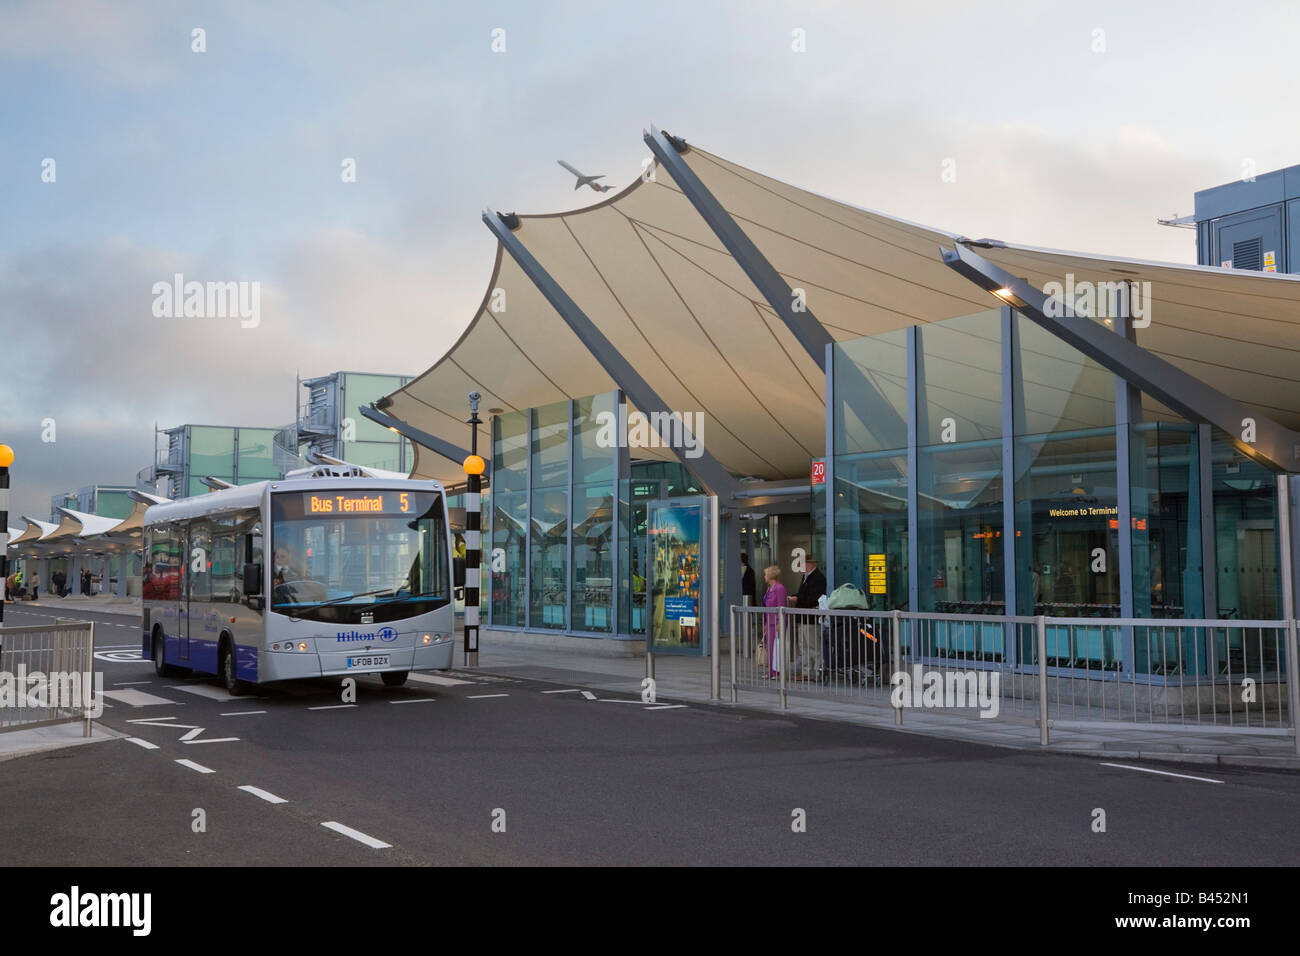 London Heathrow Airport British Airways Terminal 5 building international departures entrance and Hotel Hopper bus - Stock Image